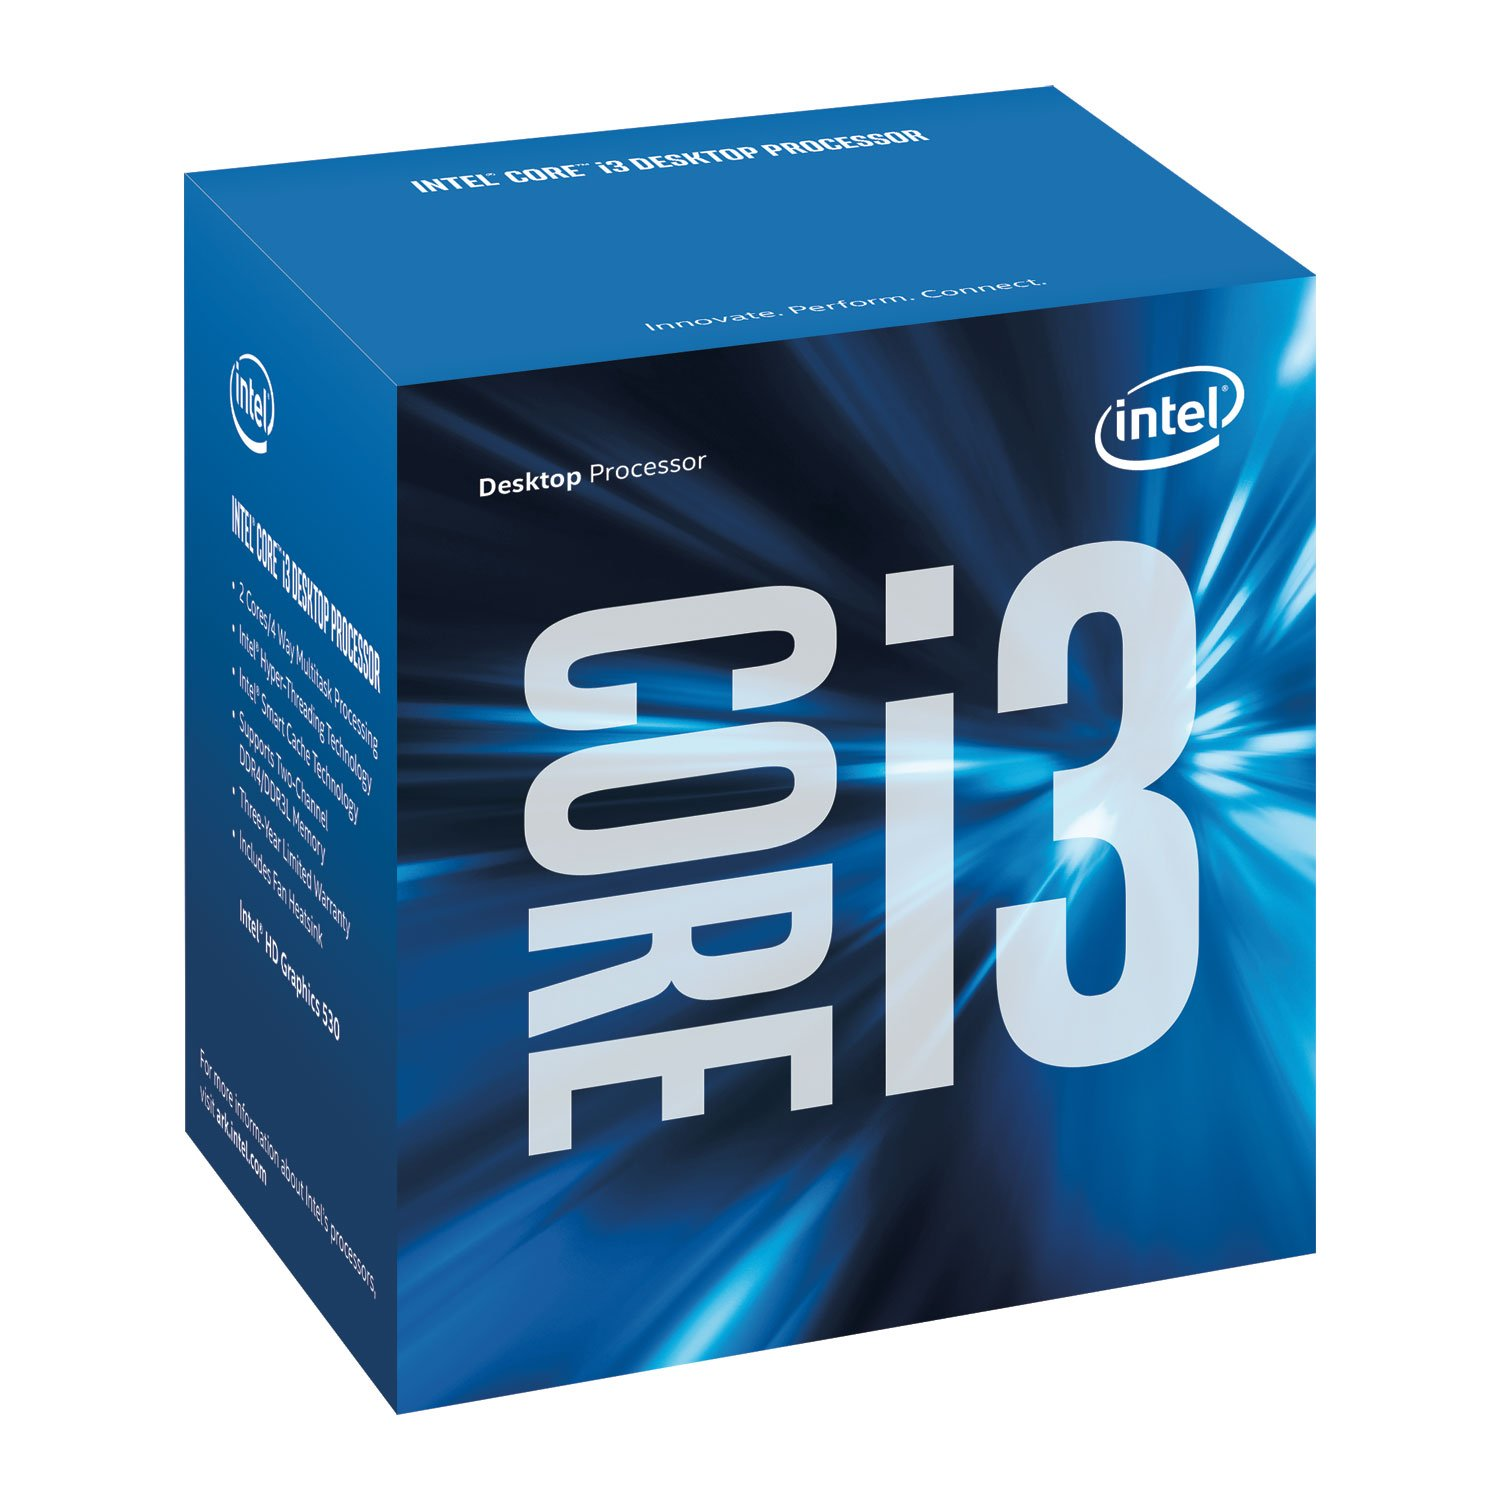 Intel Core i3-6100 3.70 GHz